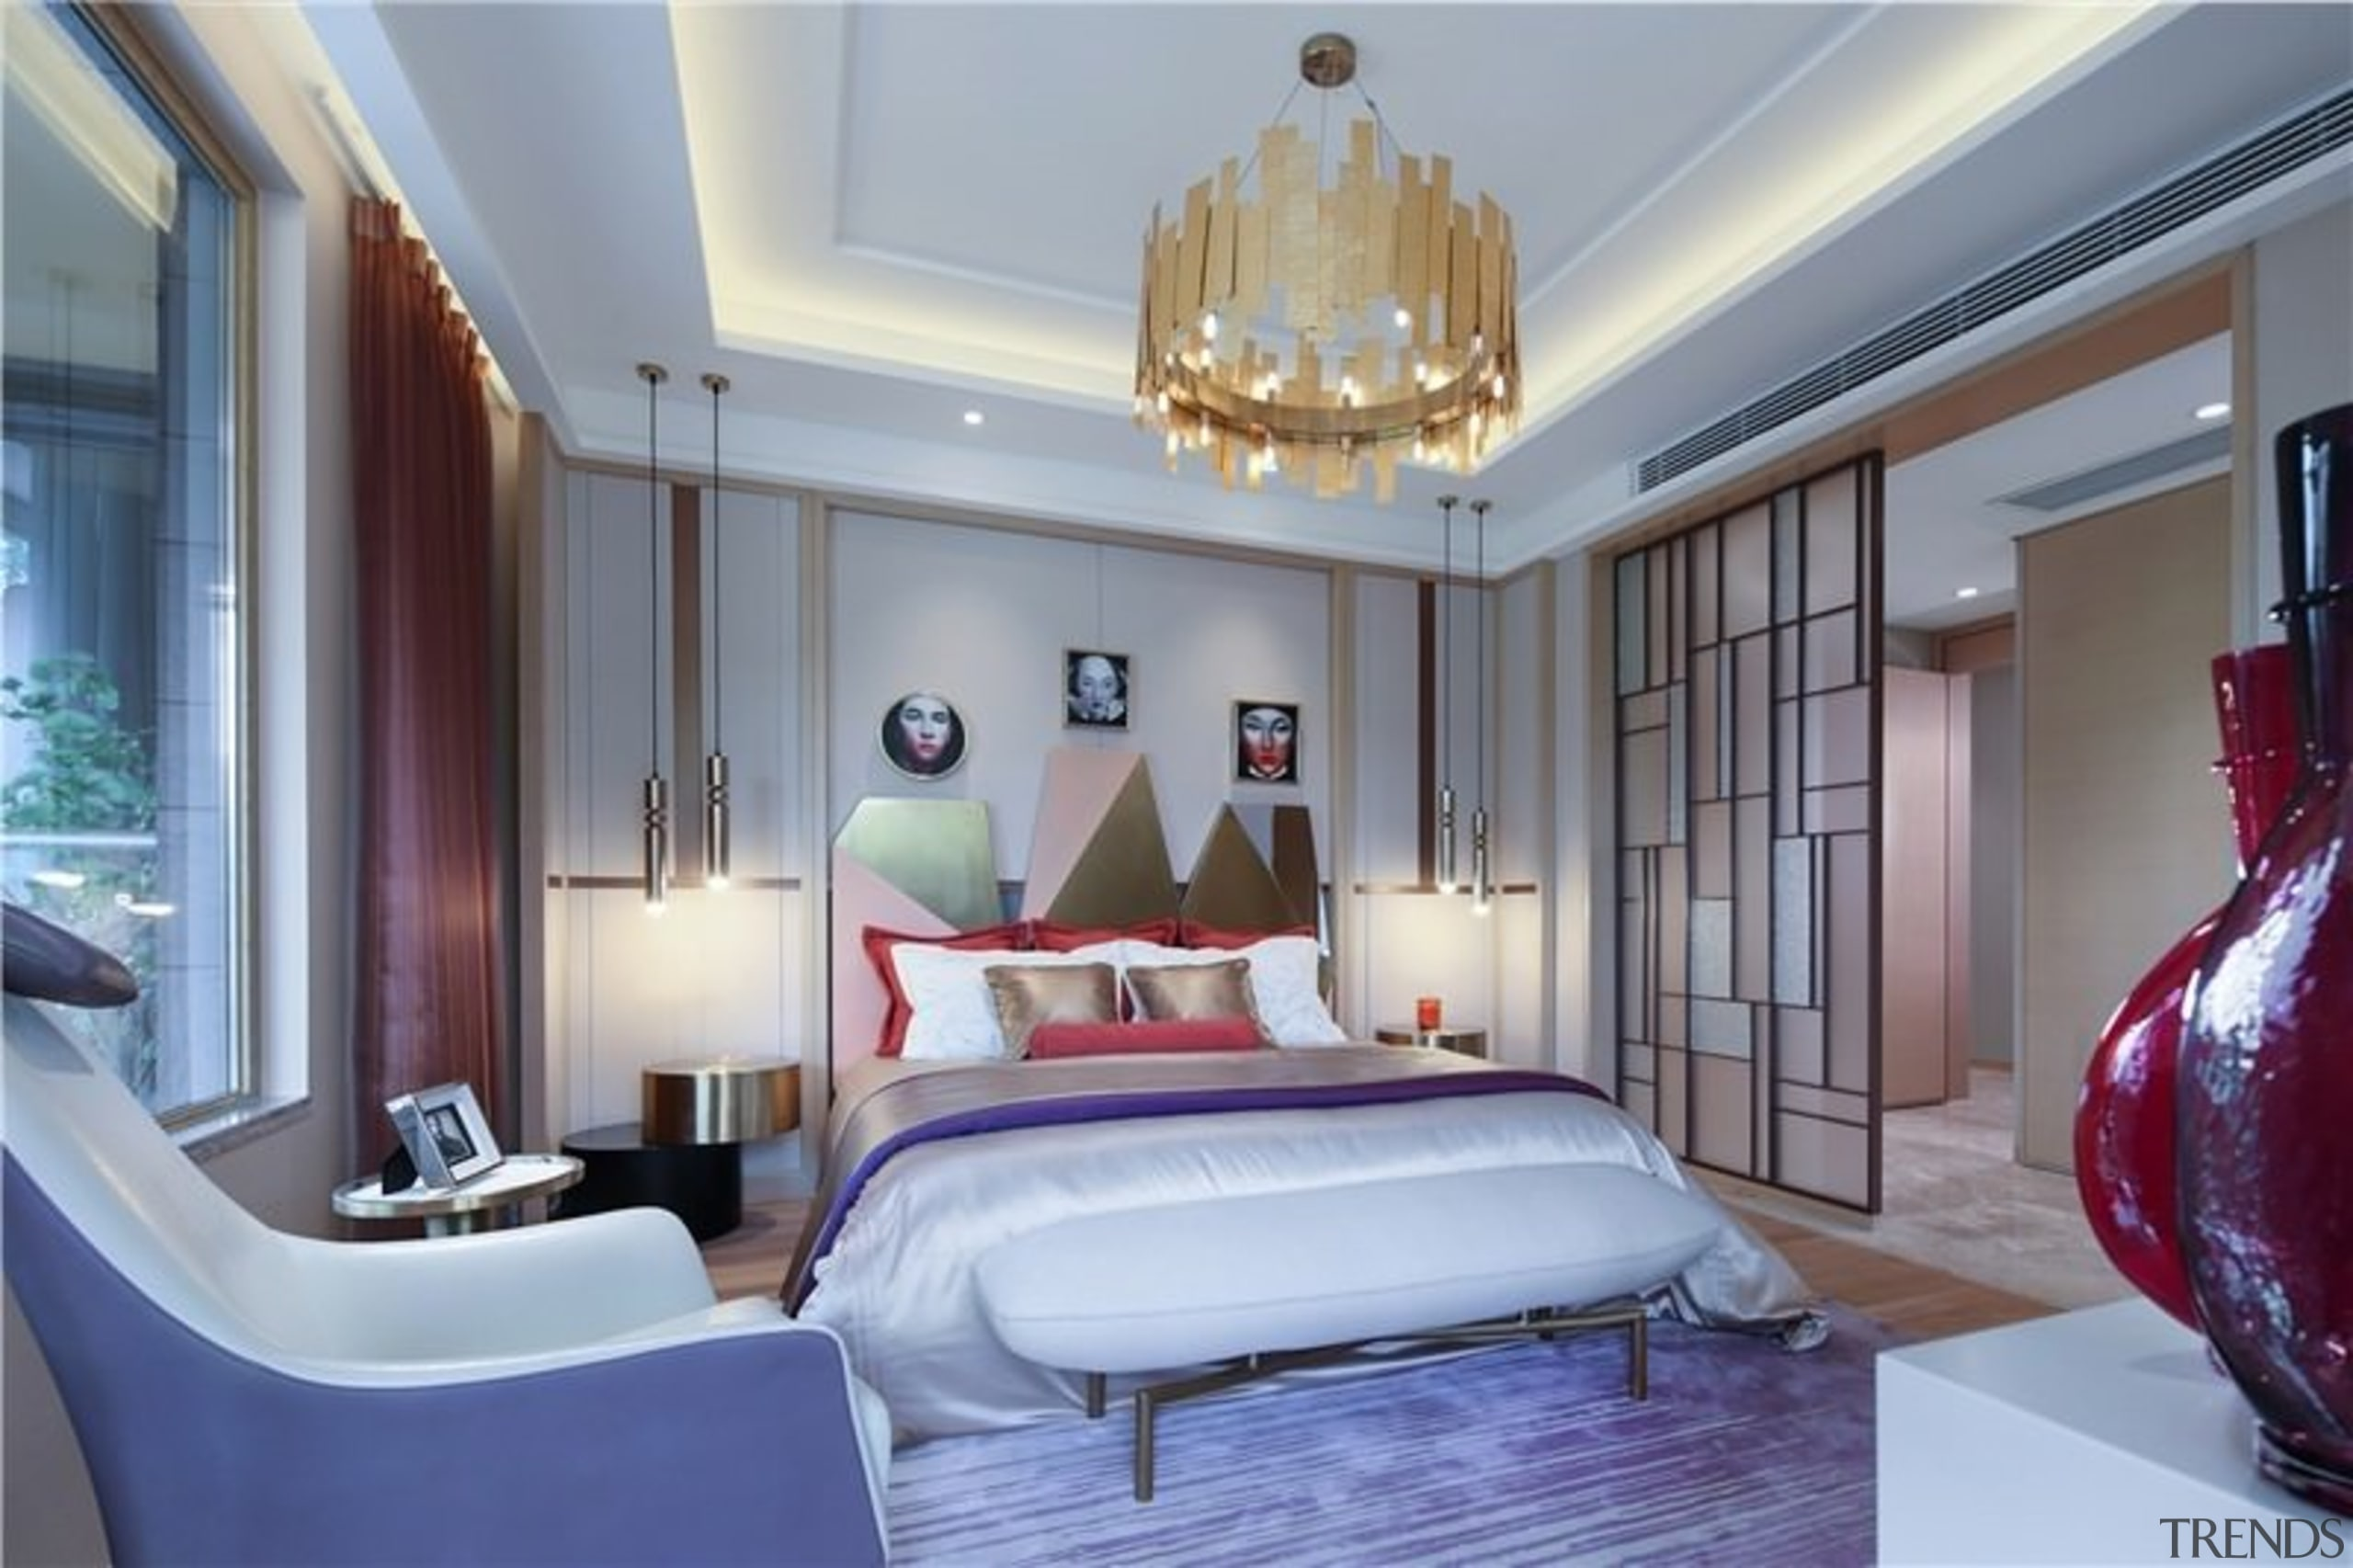 According to the designer, this room represents the bedroom, ceiling, estate, home, interior design, living room, real estate, room, suite, wall, gray